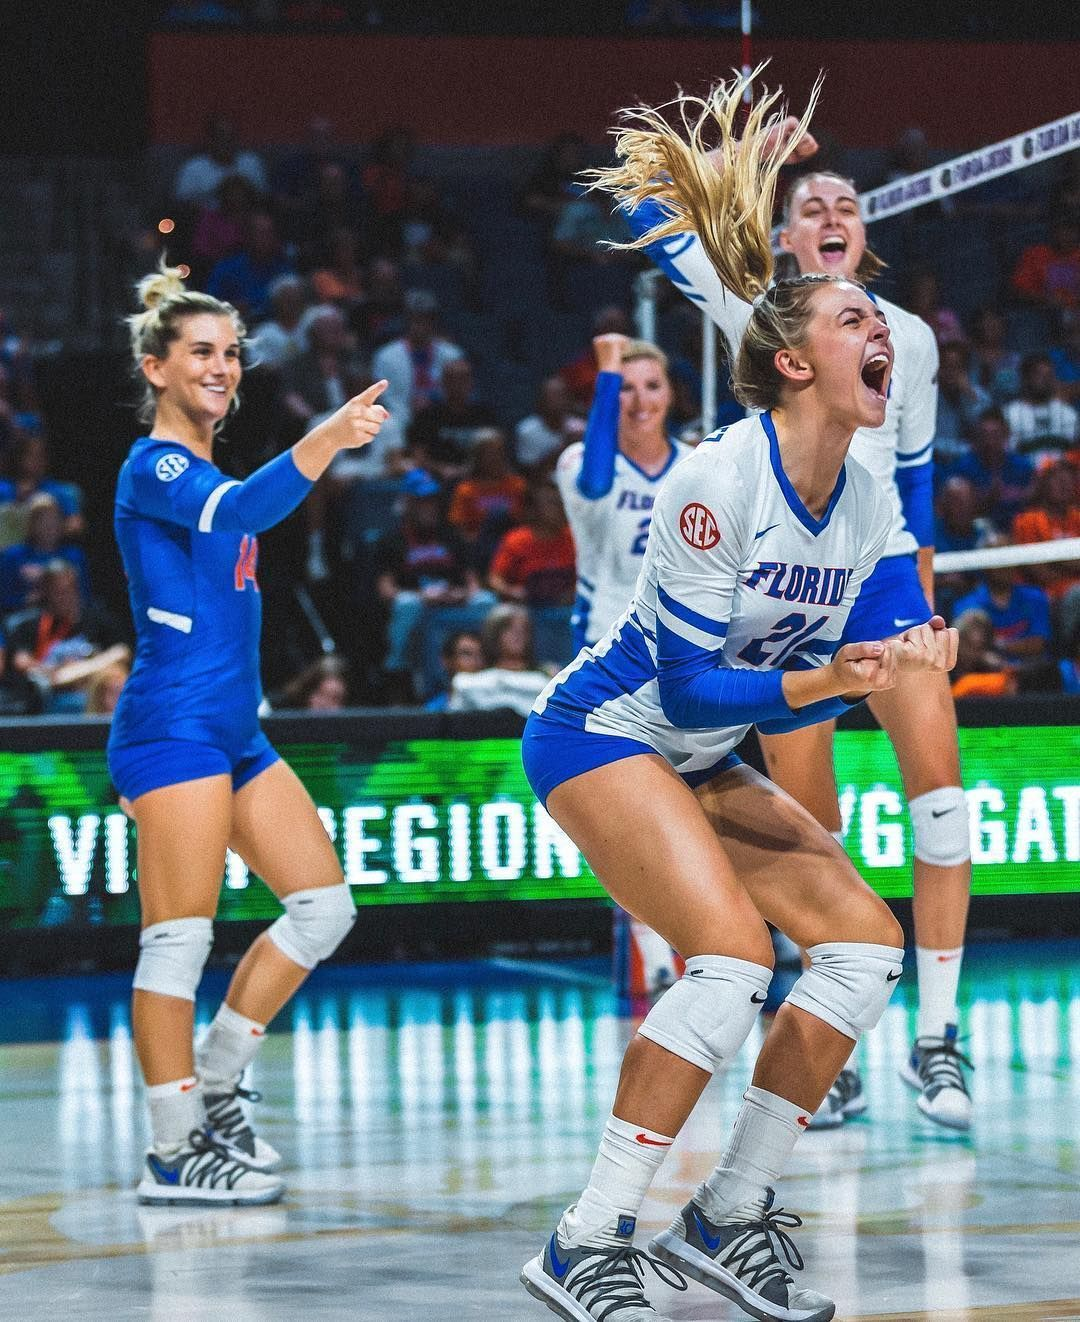 Pin By Paolo De Oca On Volleyball Shorts In 2020 Female Volleyball Players Volleyball Photography Women Volleyball